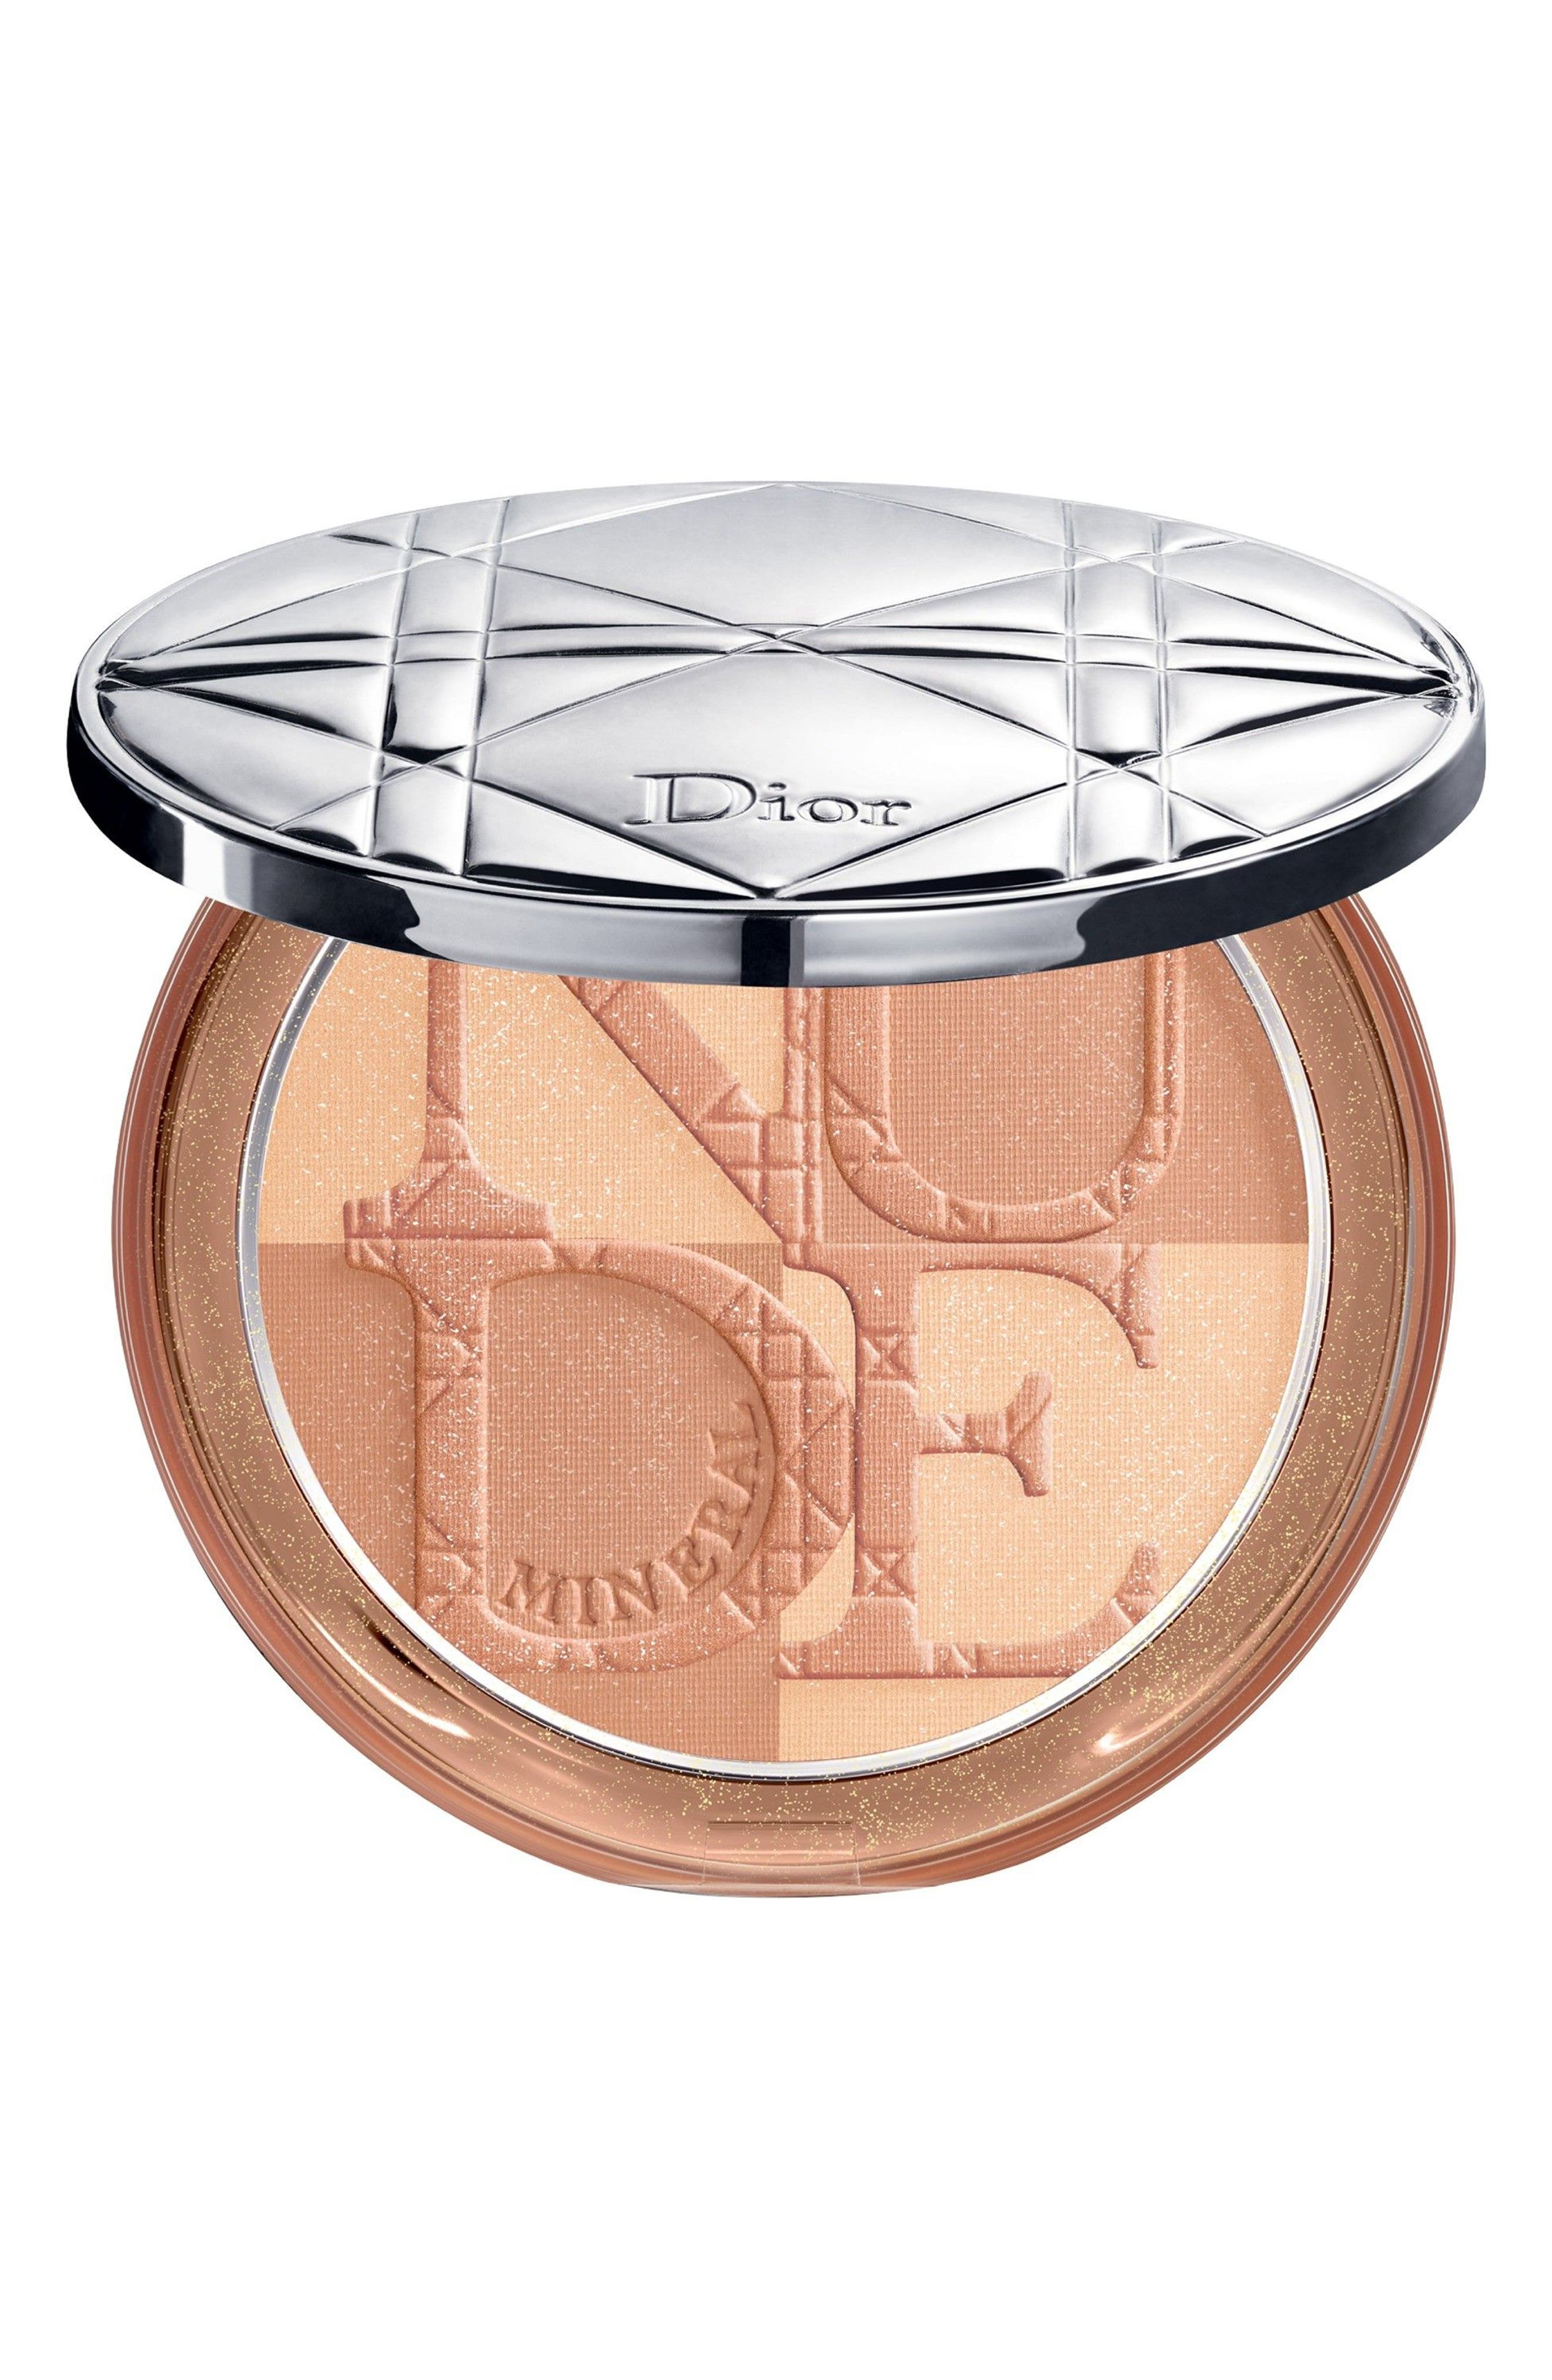 Diorskin Mineral Nude Bronze Powder,                             Main thumbnail 1, color,                             001 SOFT SUNRISE